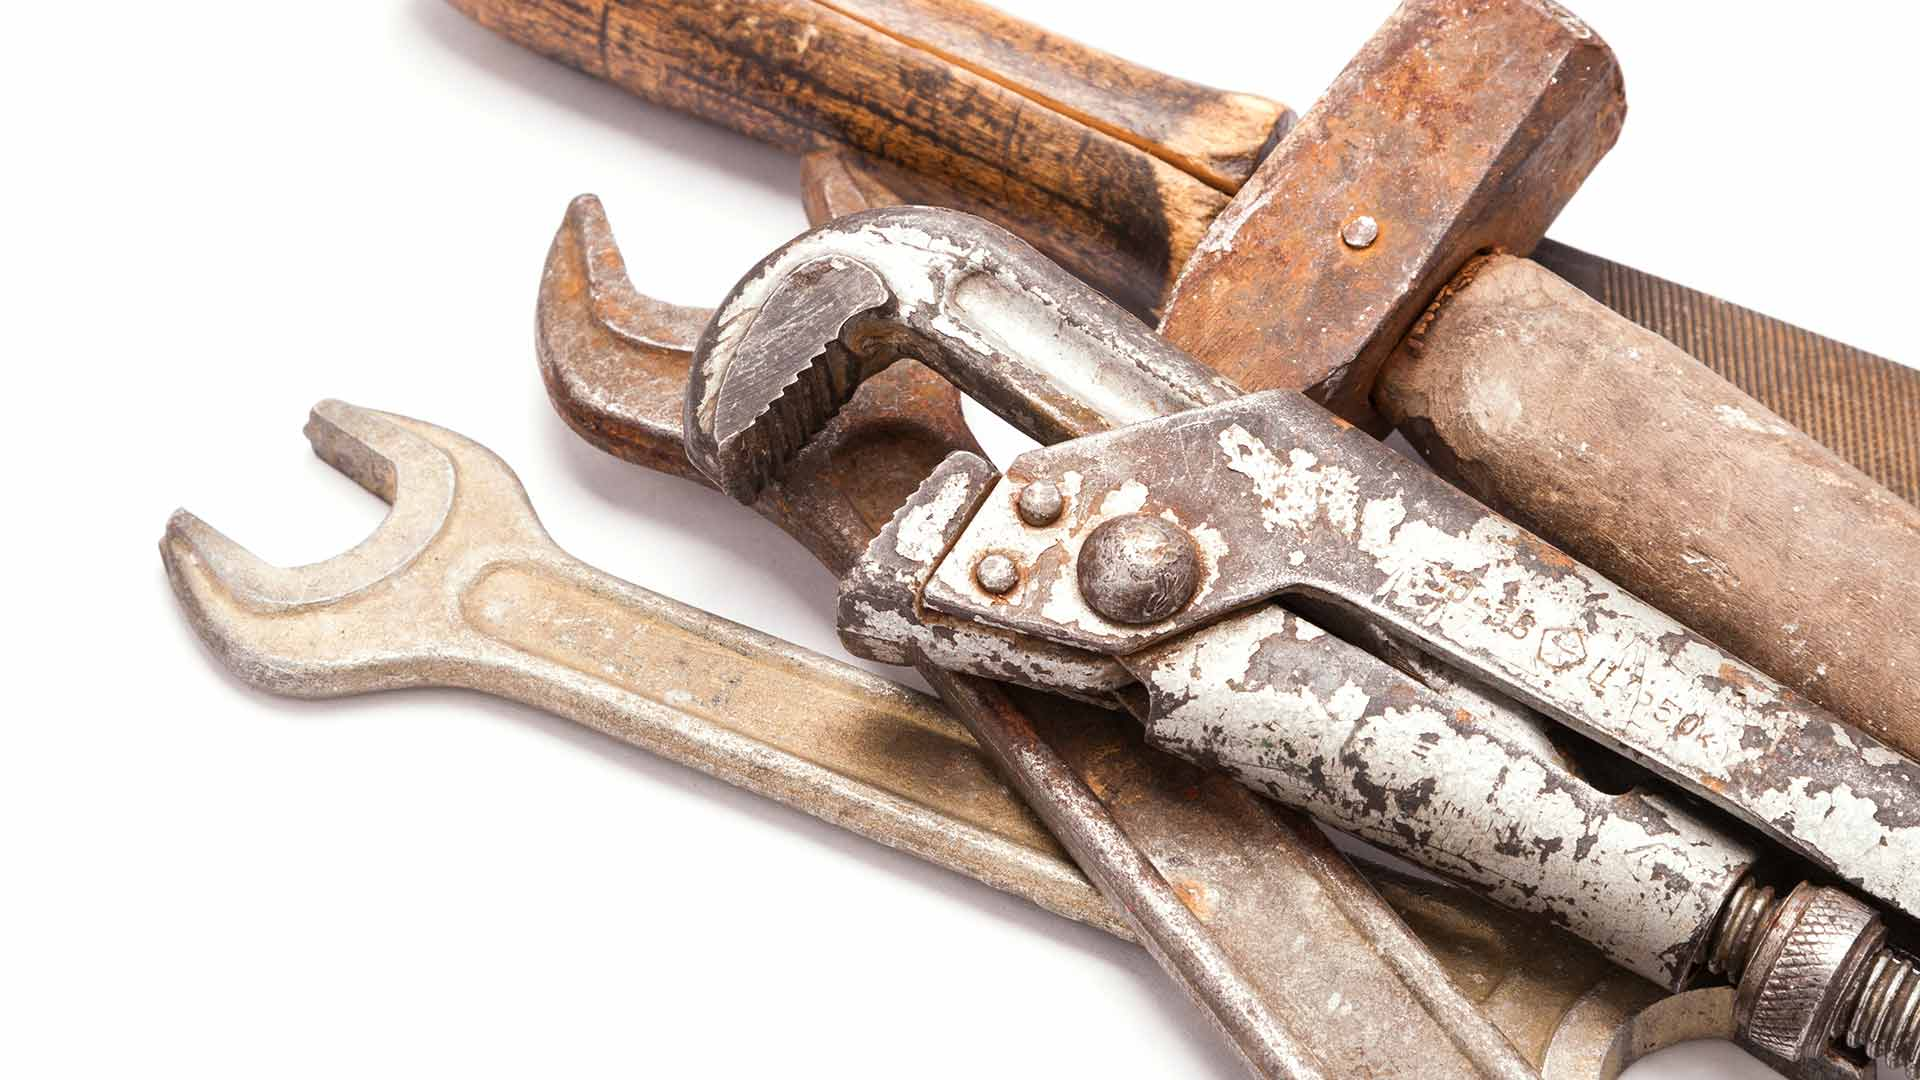 Hand tools covered with rust